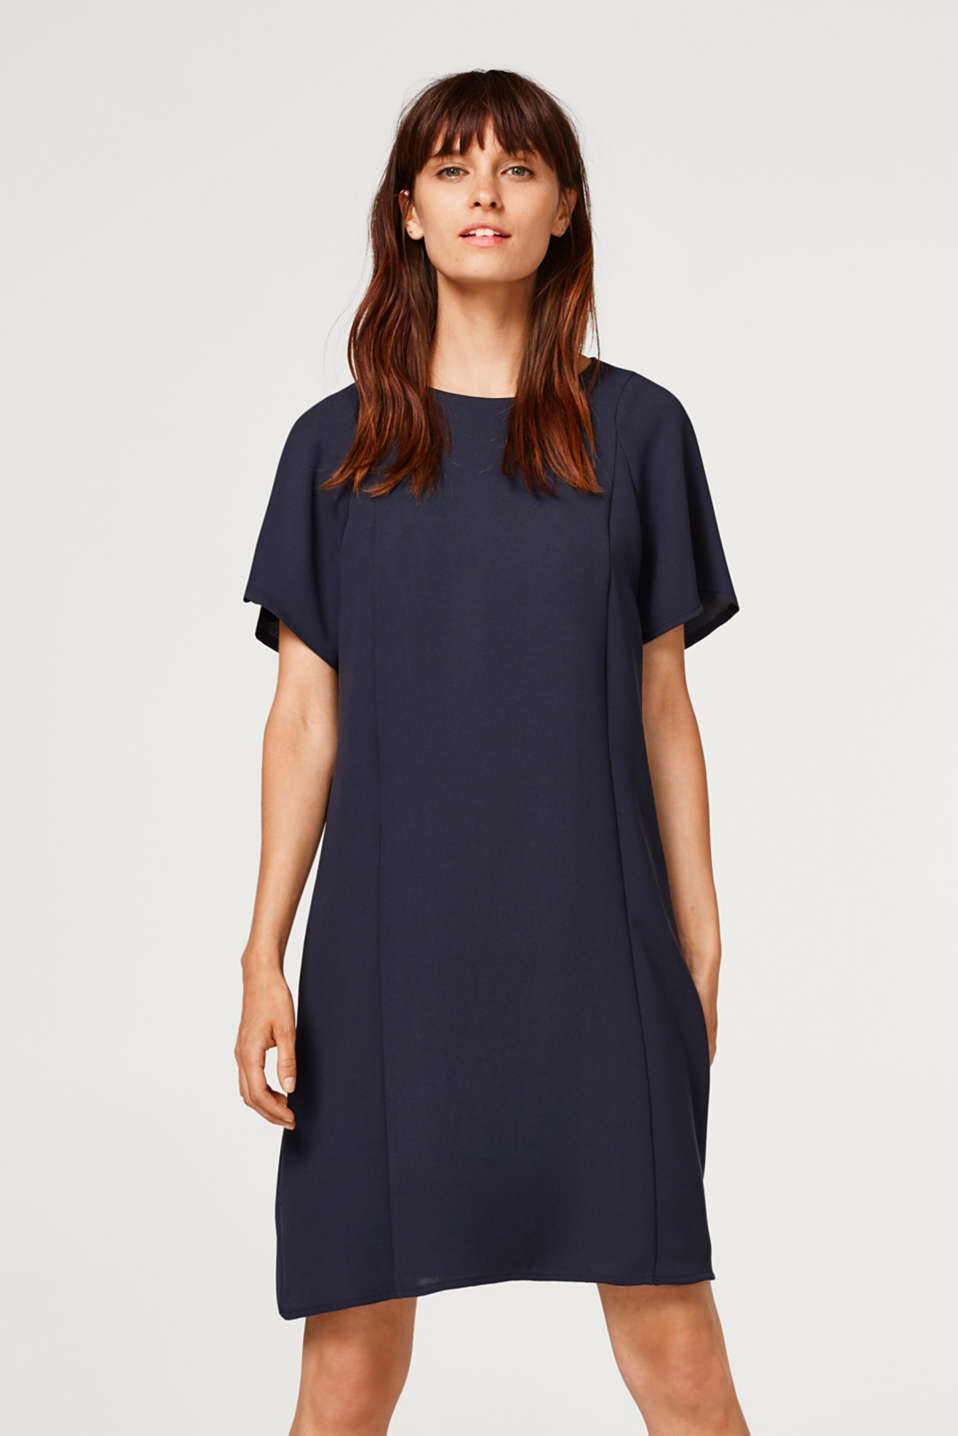 Esprit - Dress with cap sleeves